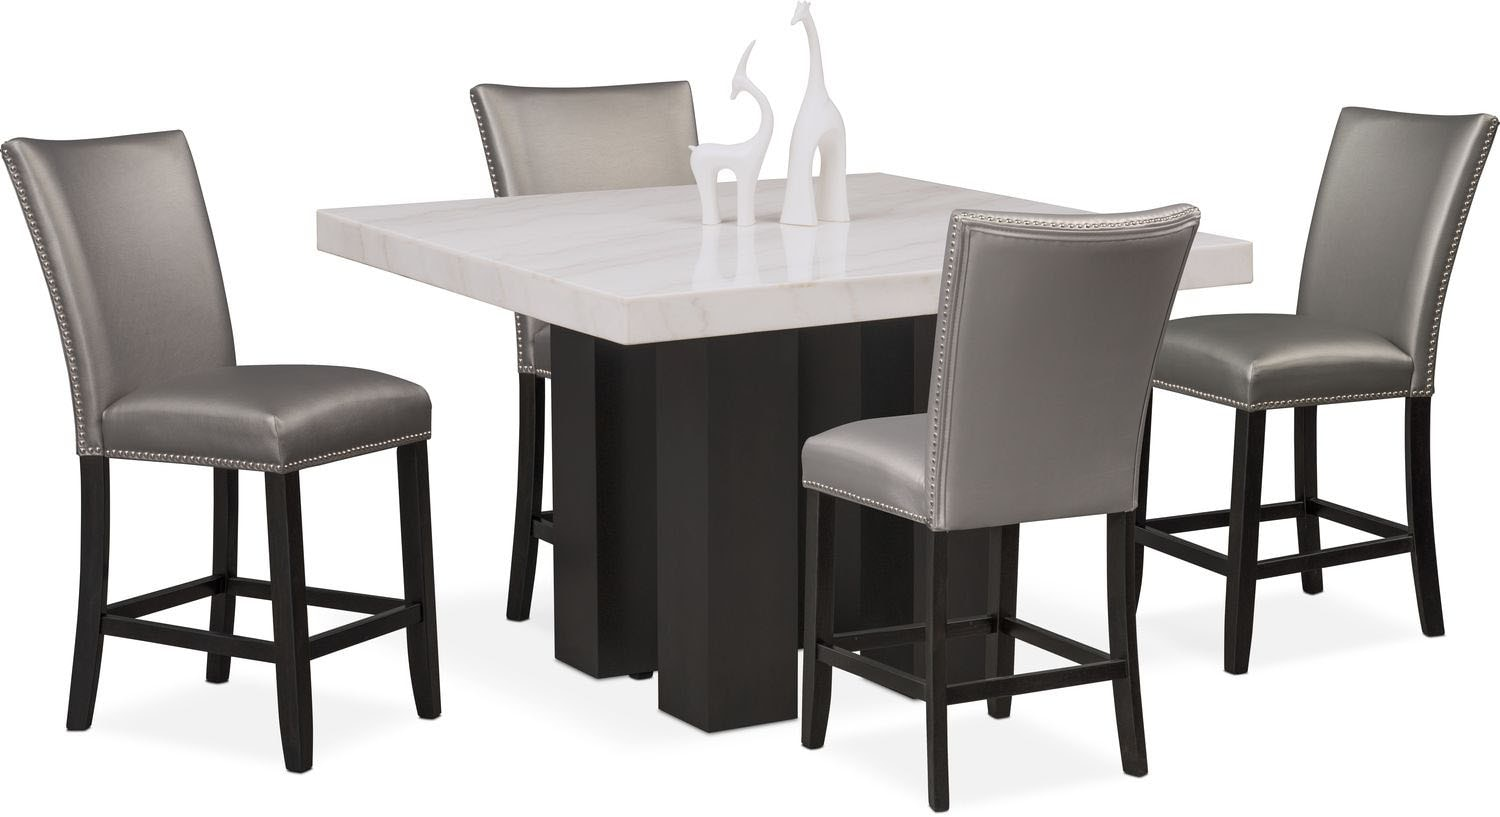 Dining Room Furniture   Artemis Counter Height Dining Table And 4  Upholstered Stools   Gray